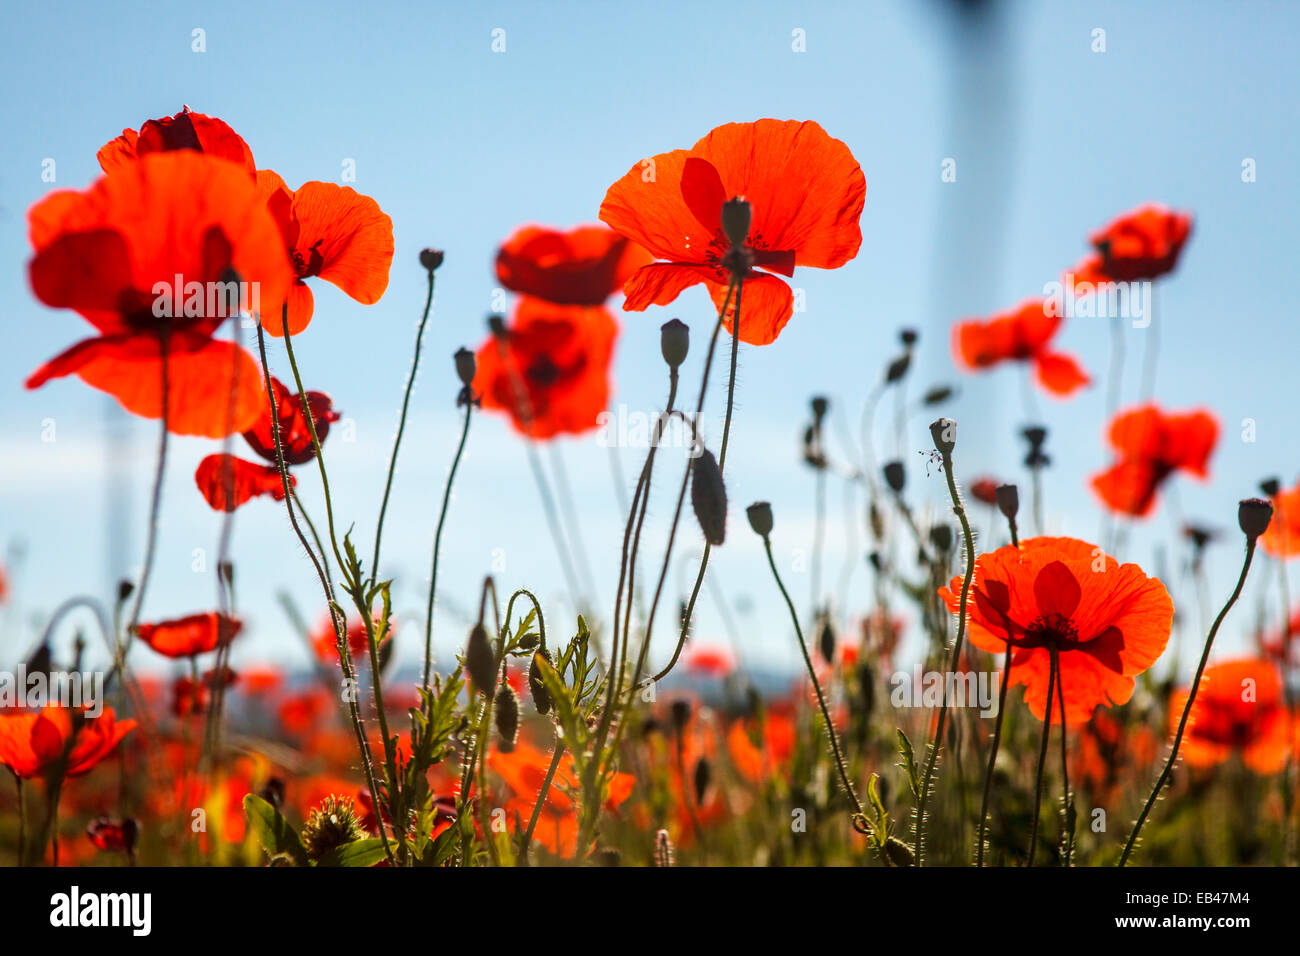 Endless field with flowering red poppies. Photographed in Italy, Tuscany - Stock Image